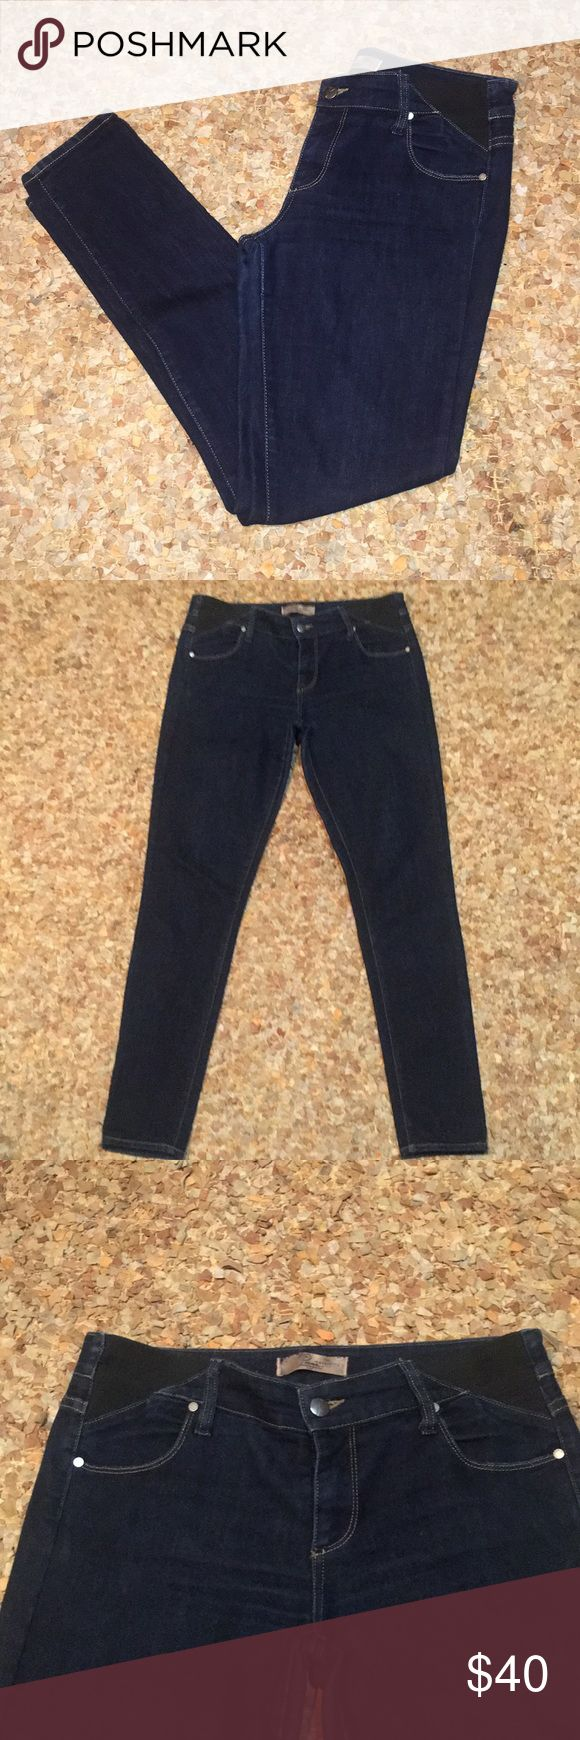 """Paige premium maternity skinny jeans 👖 29 These are in excellent condition. Paige premium denim, maternity, stretch panels at sides, Sz 29, dark wash, 73% cotton, 27% elasterell, made in USA, 30"""" inseam, 5"""" leg opening! Staple piece! Paige Jeans Jeans Skinny"""